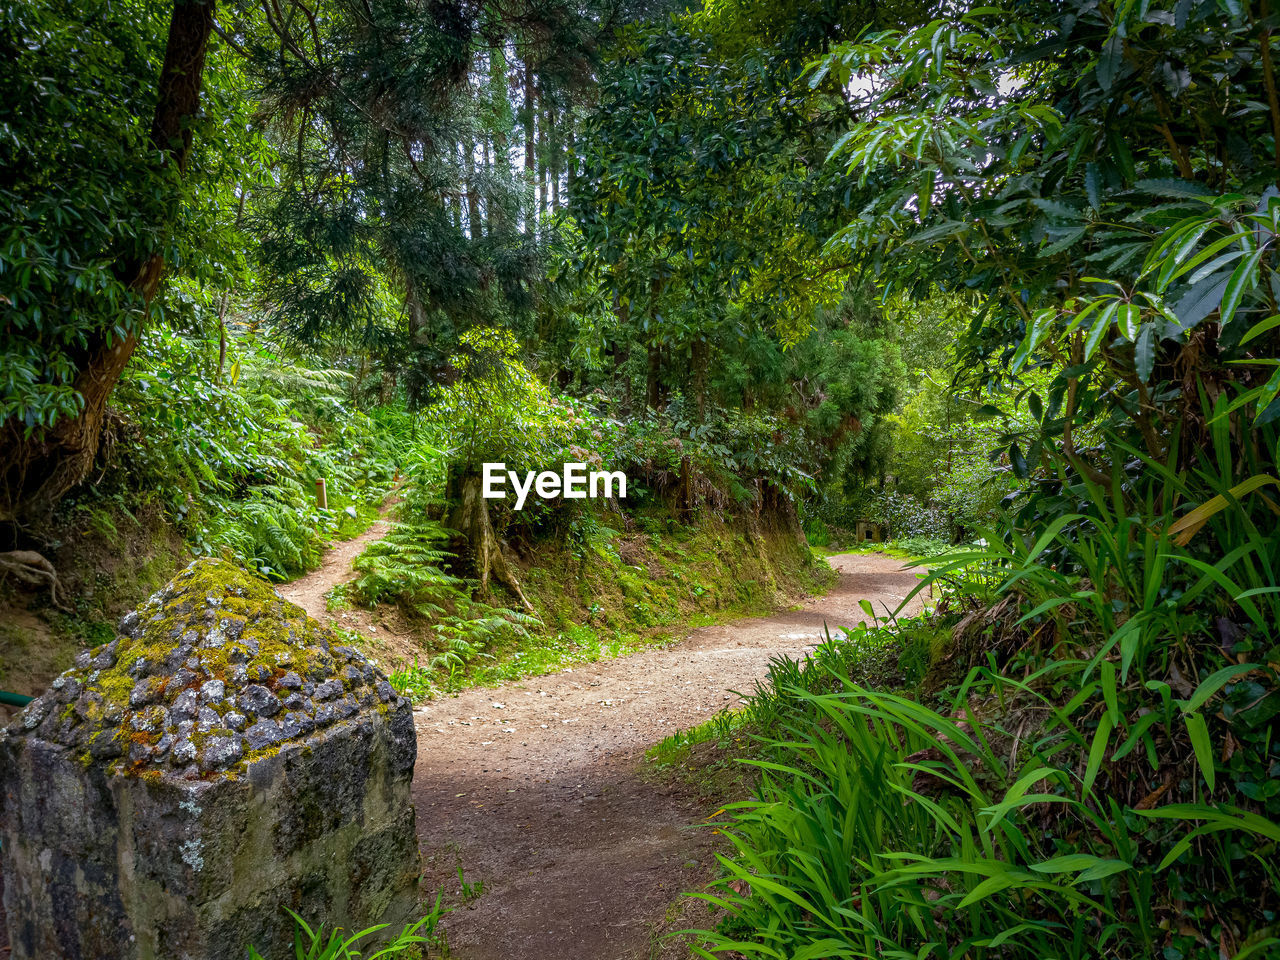 plant, tree, footpath, green color, direction, forest, tranquility, nature, beauty in nature, tranquil scene, growth, no people, the way forward, day, land, non-urban scene, scenics - nature, lush foliage, road, foliage, outdoors, woodland, garden path, flowerbed, ornamental garden